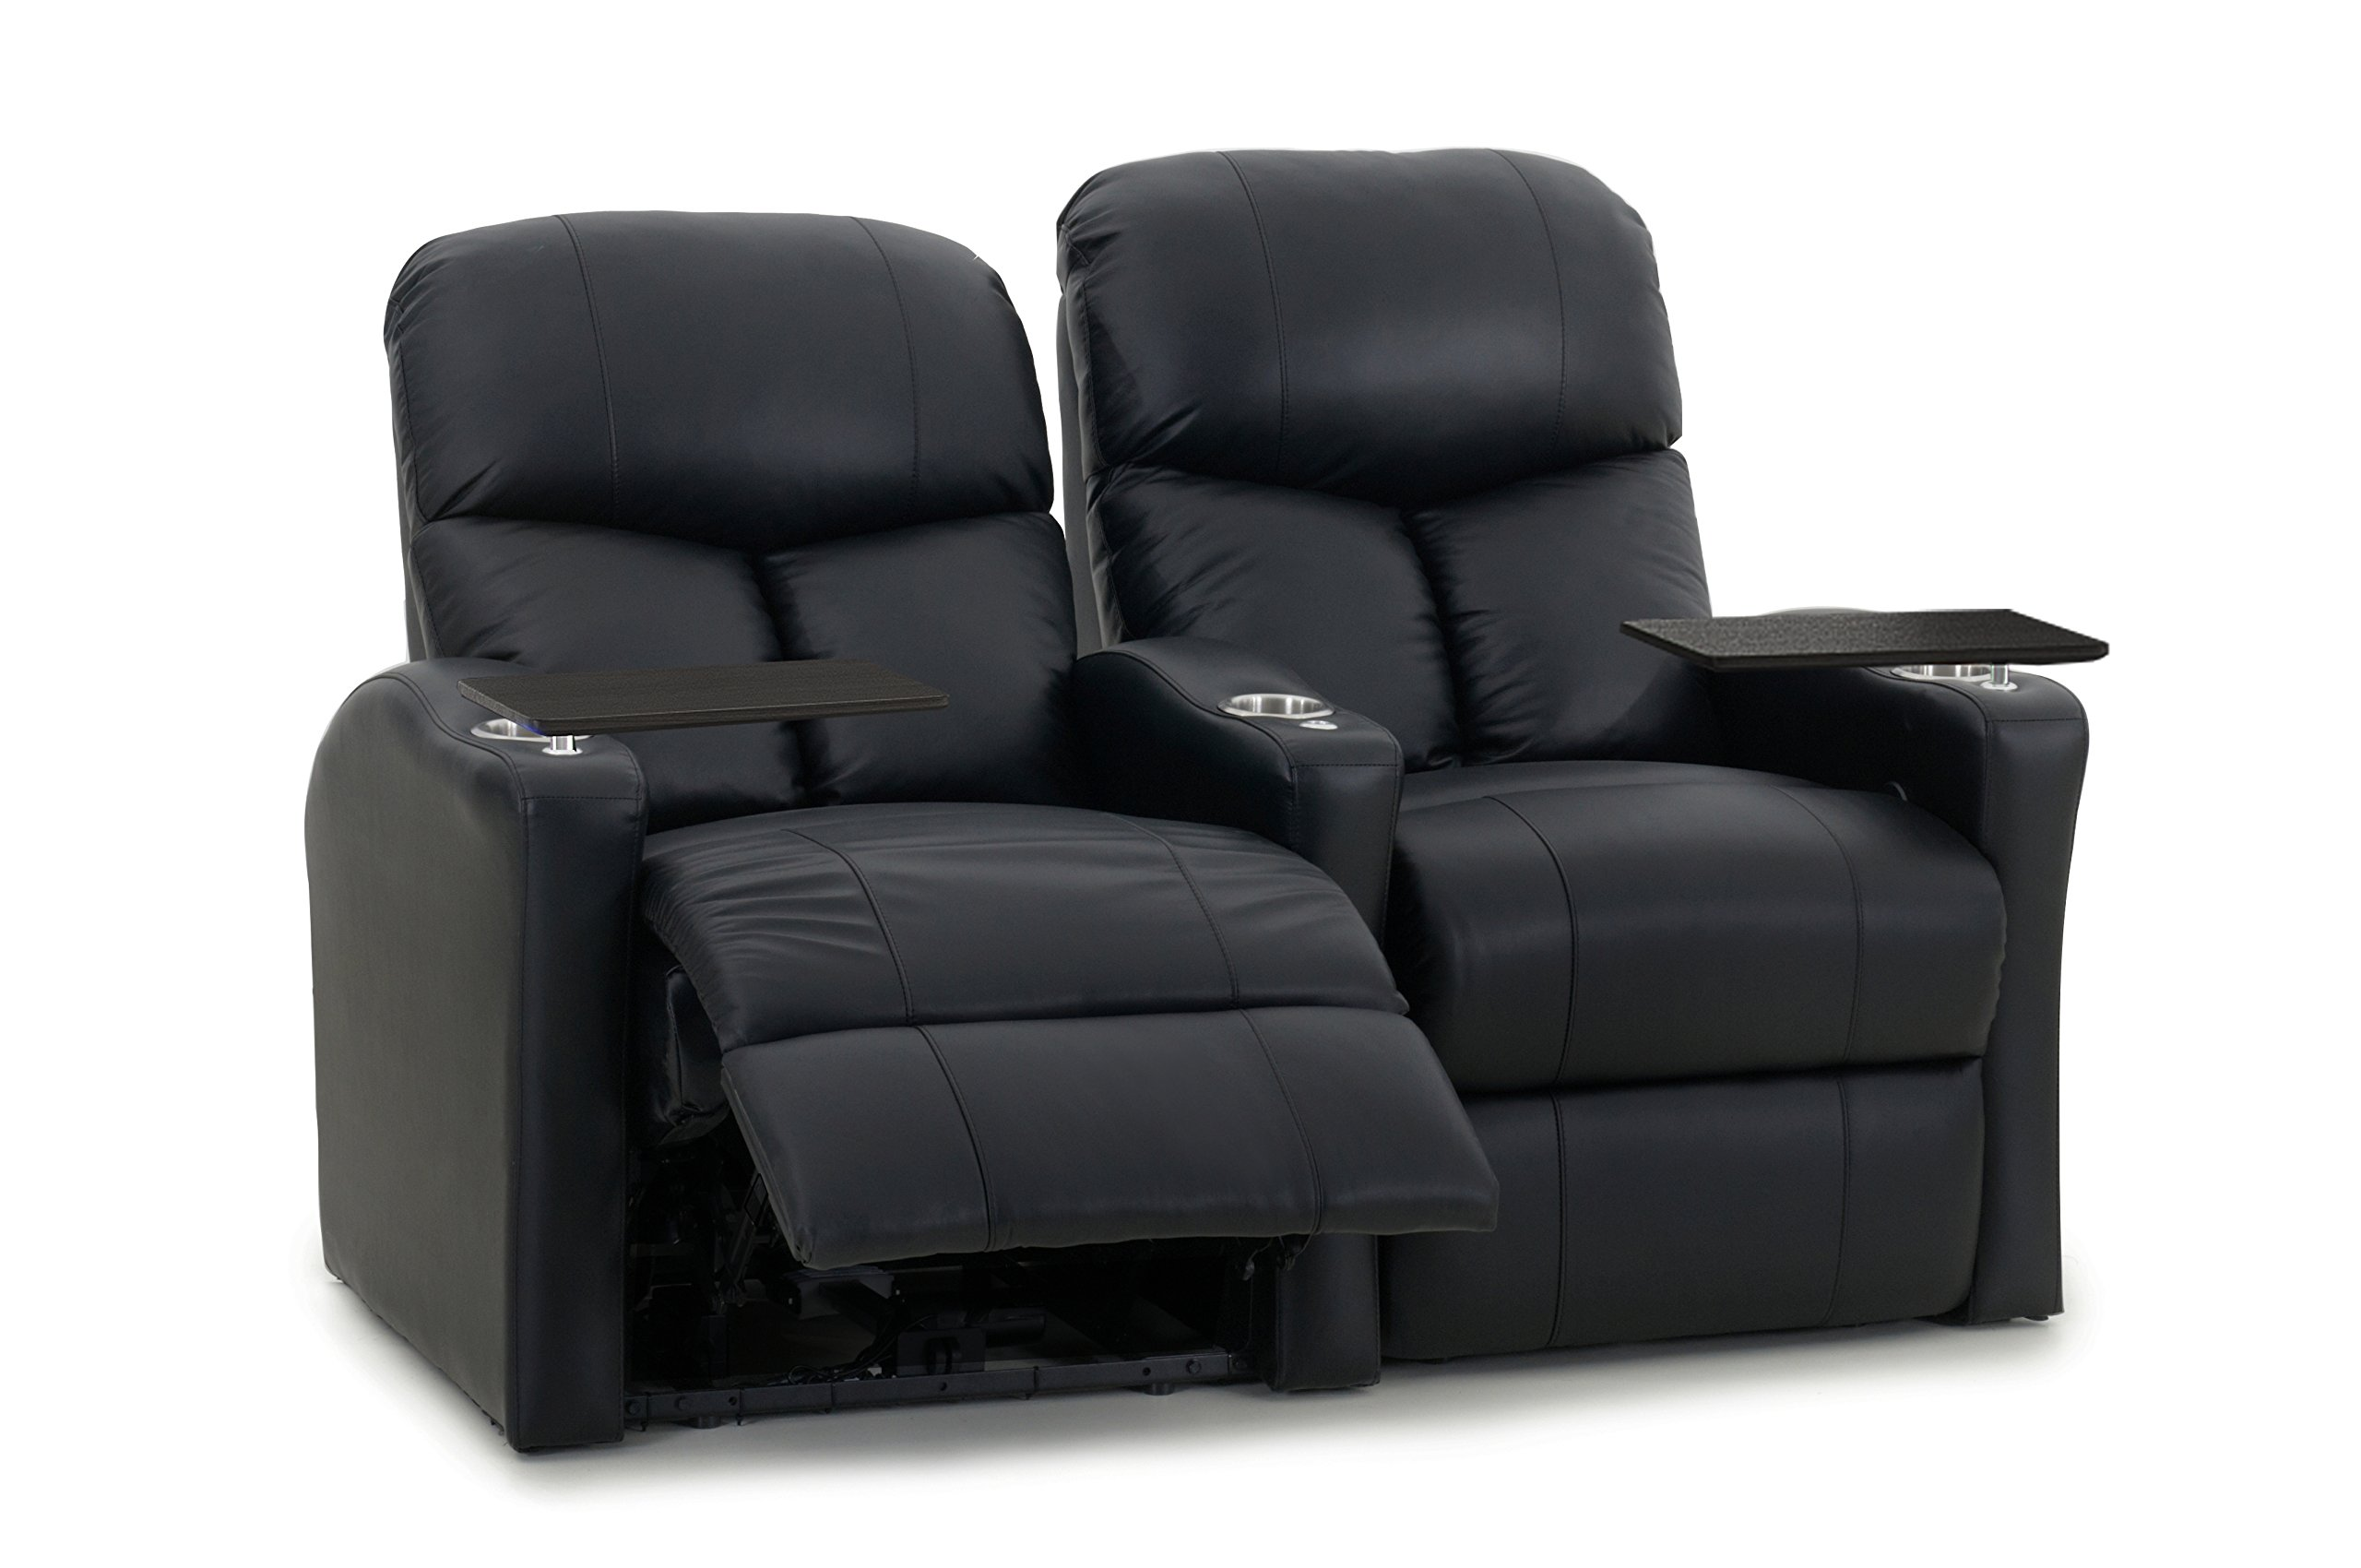 Octane Seating Octane Bolt XS400 Motorized Leather Home Theater Recliner Set (Row of 2) by Octane Seating